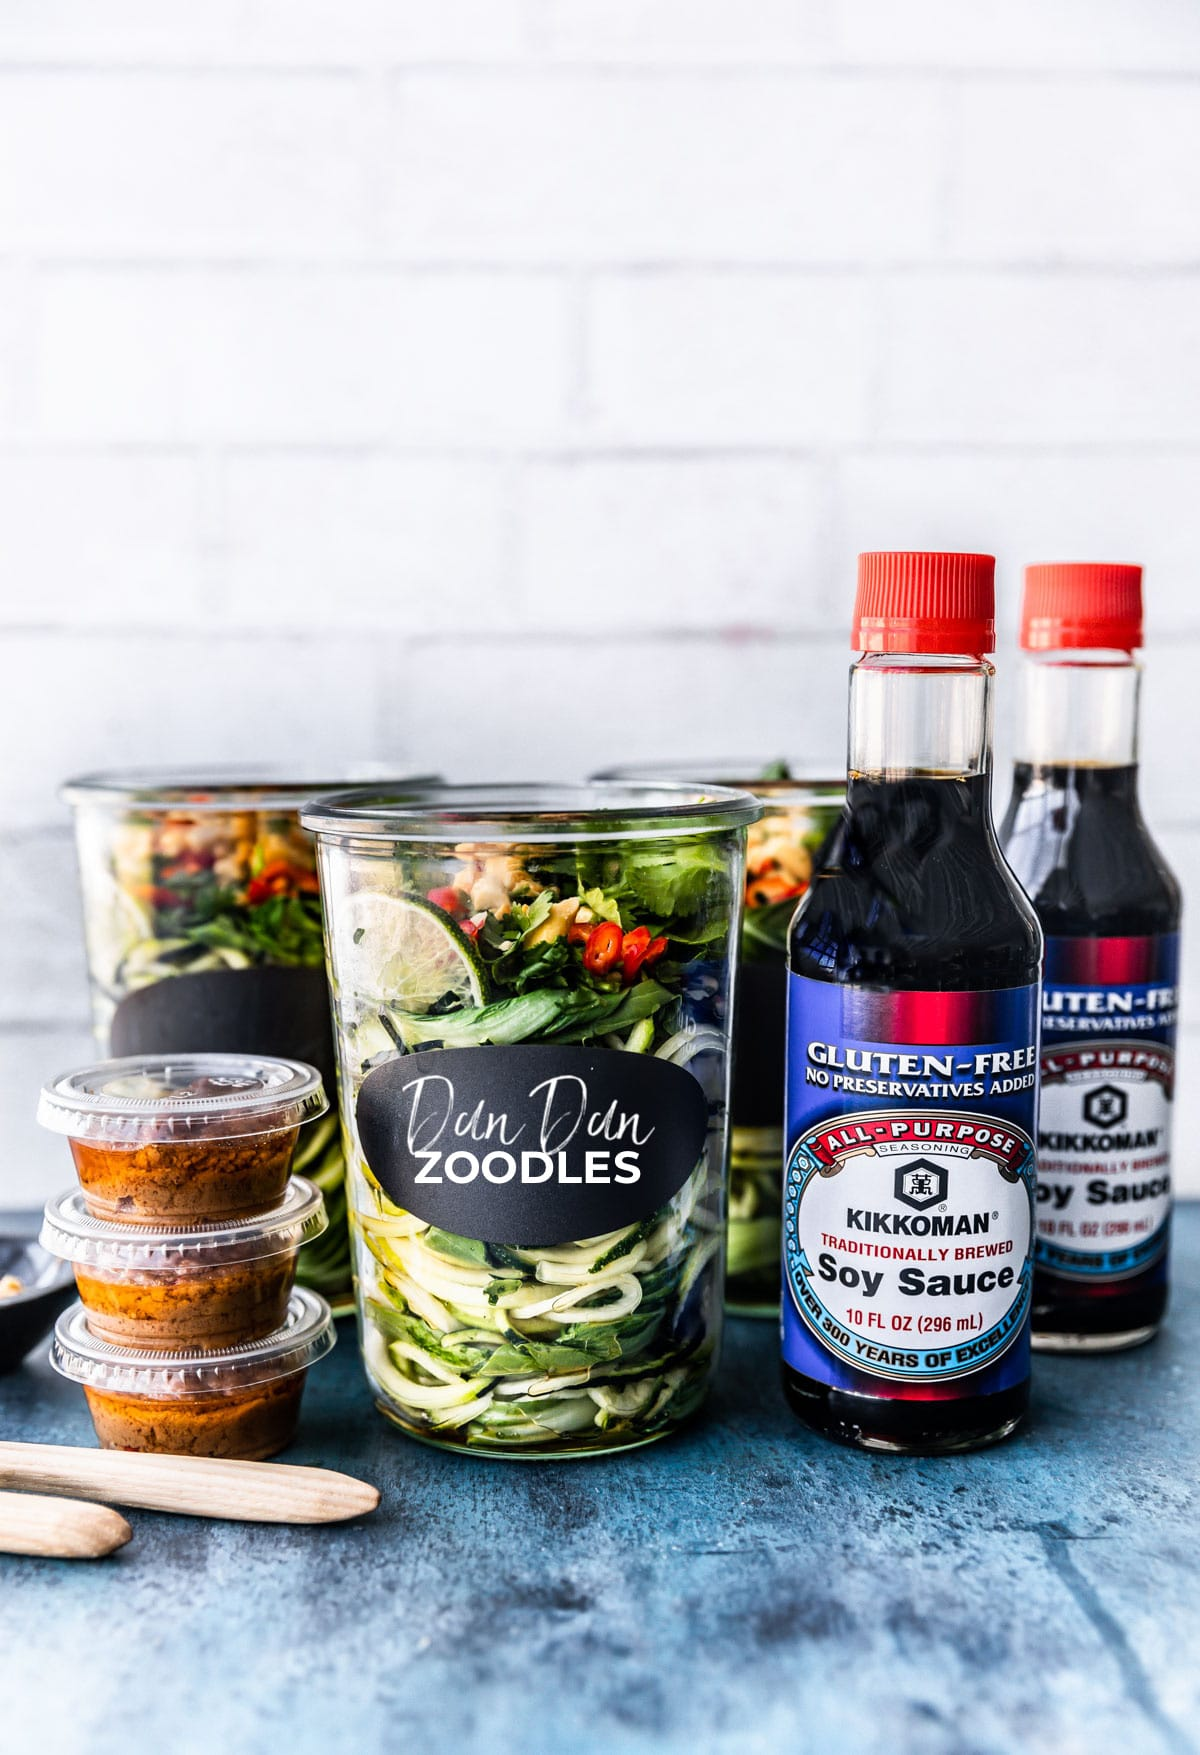 jar of zoodles with sauce on side and soy sauce bottle